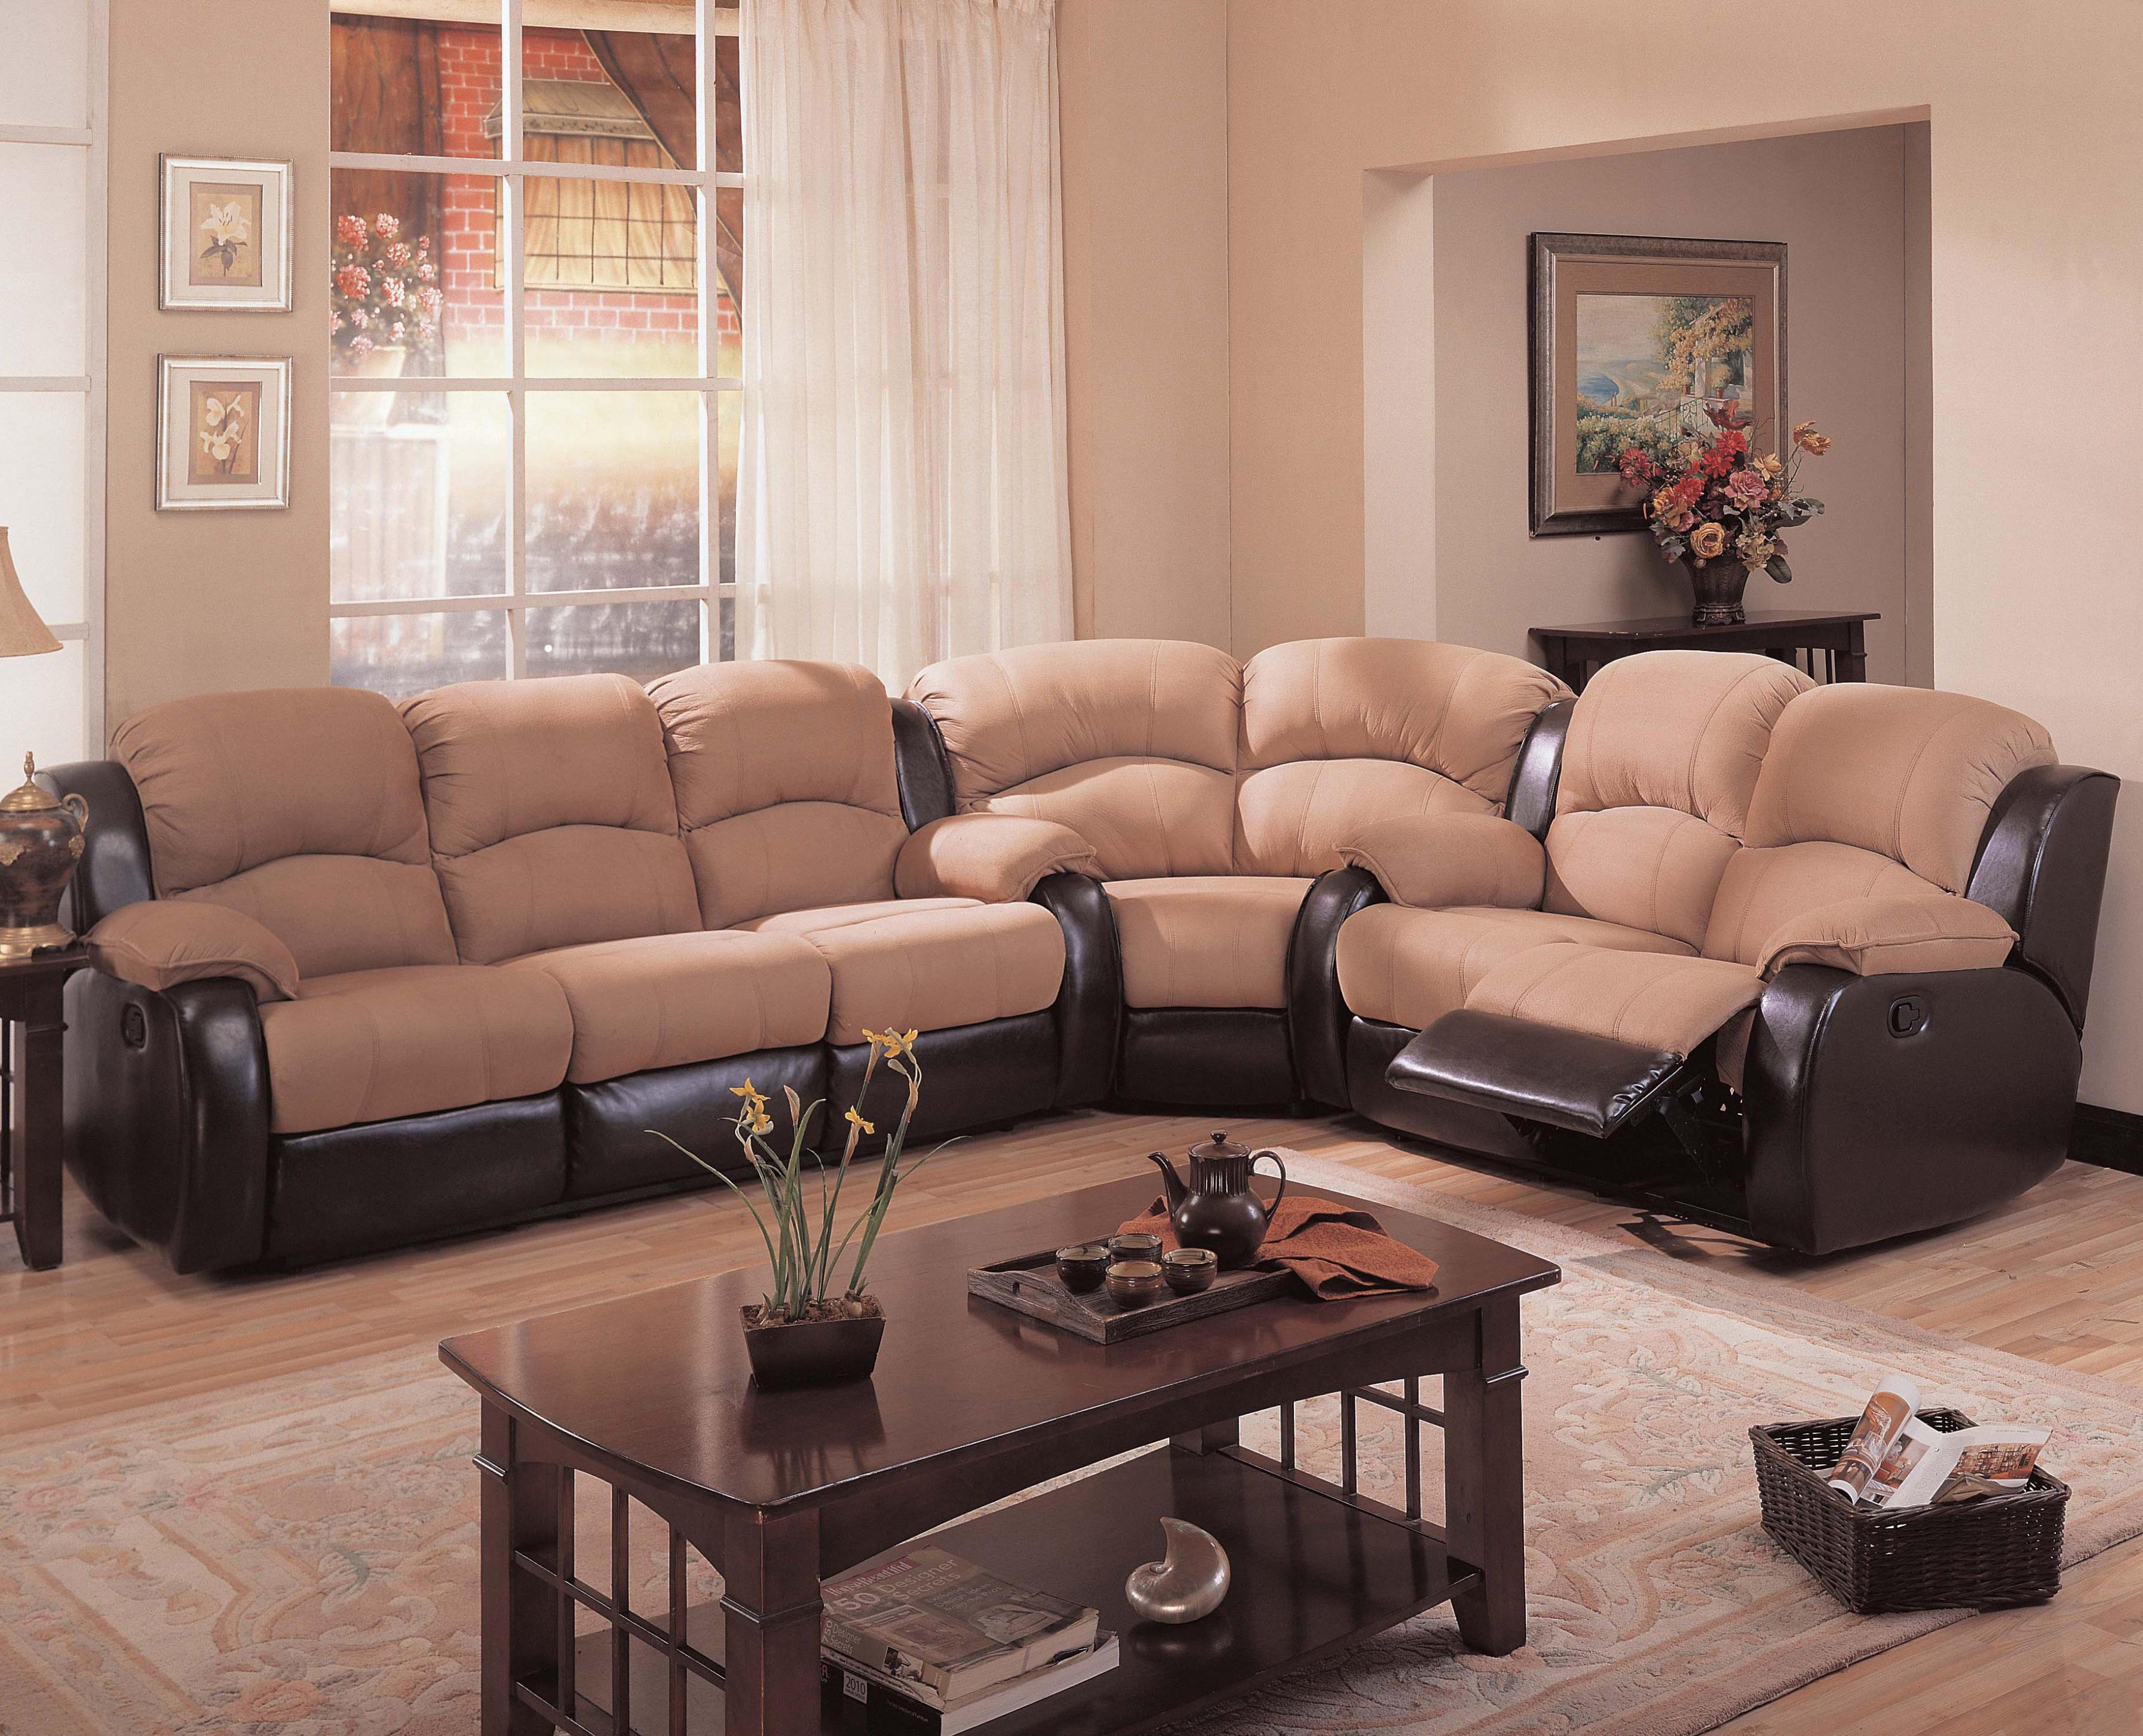 Image of: Modern Microfiber Sectional Couch